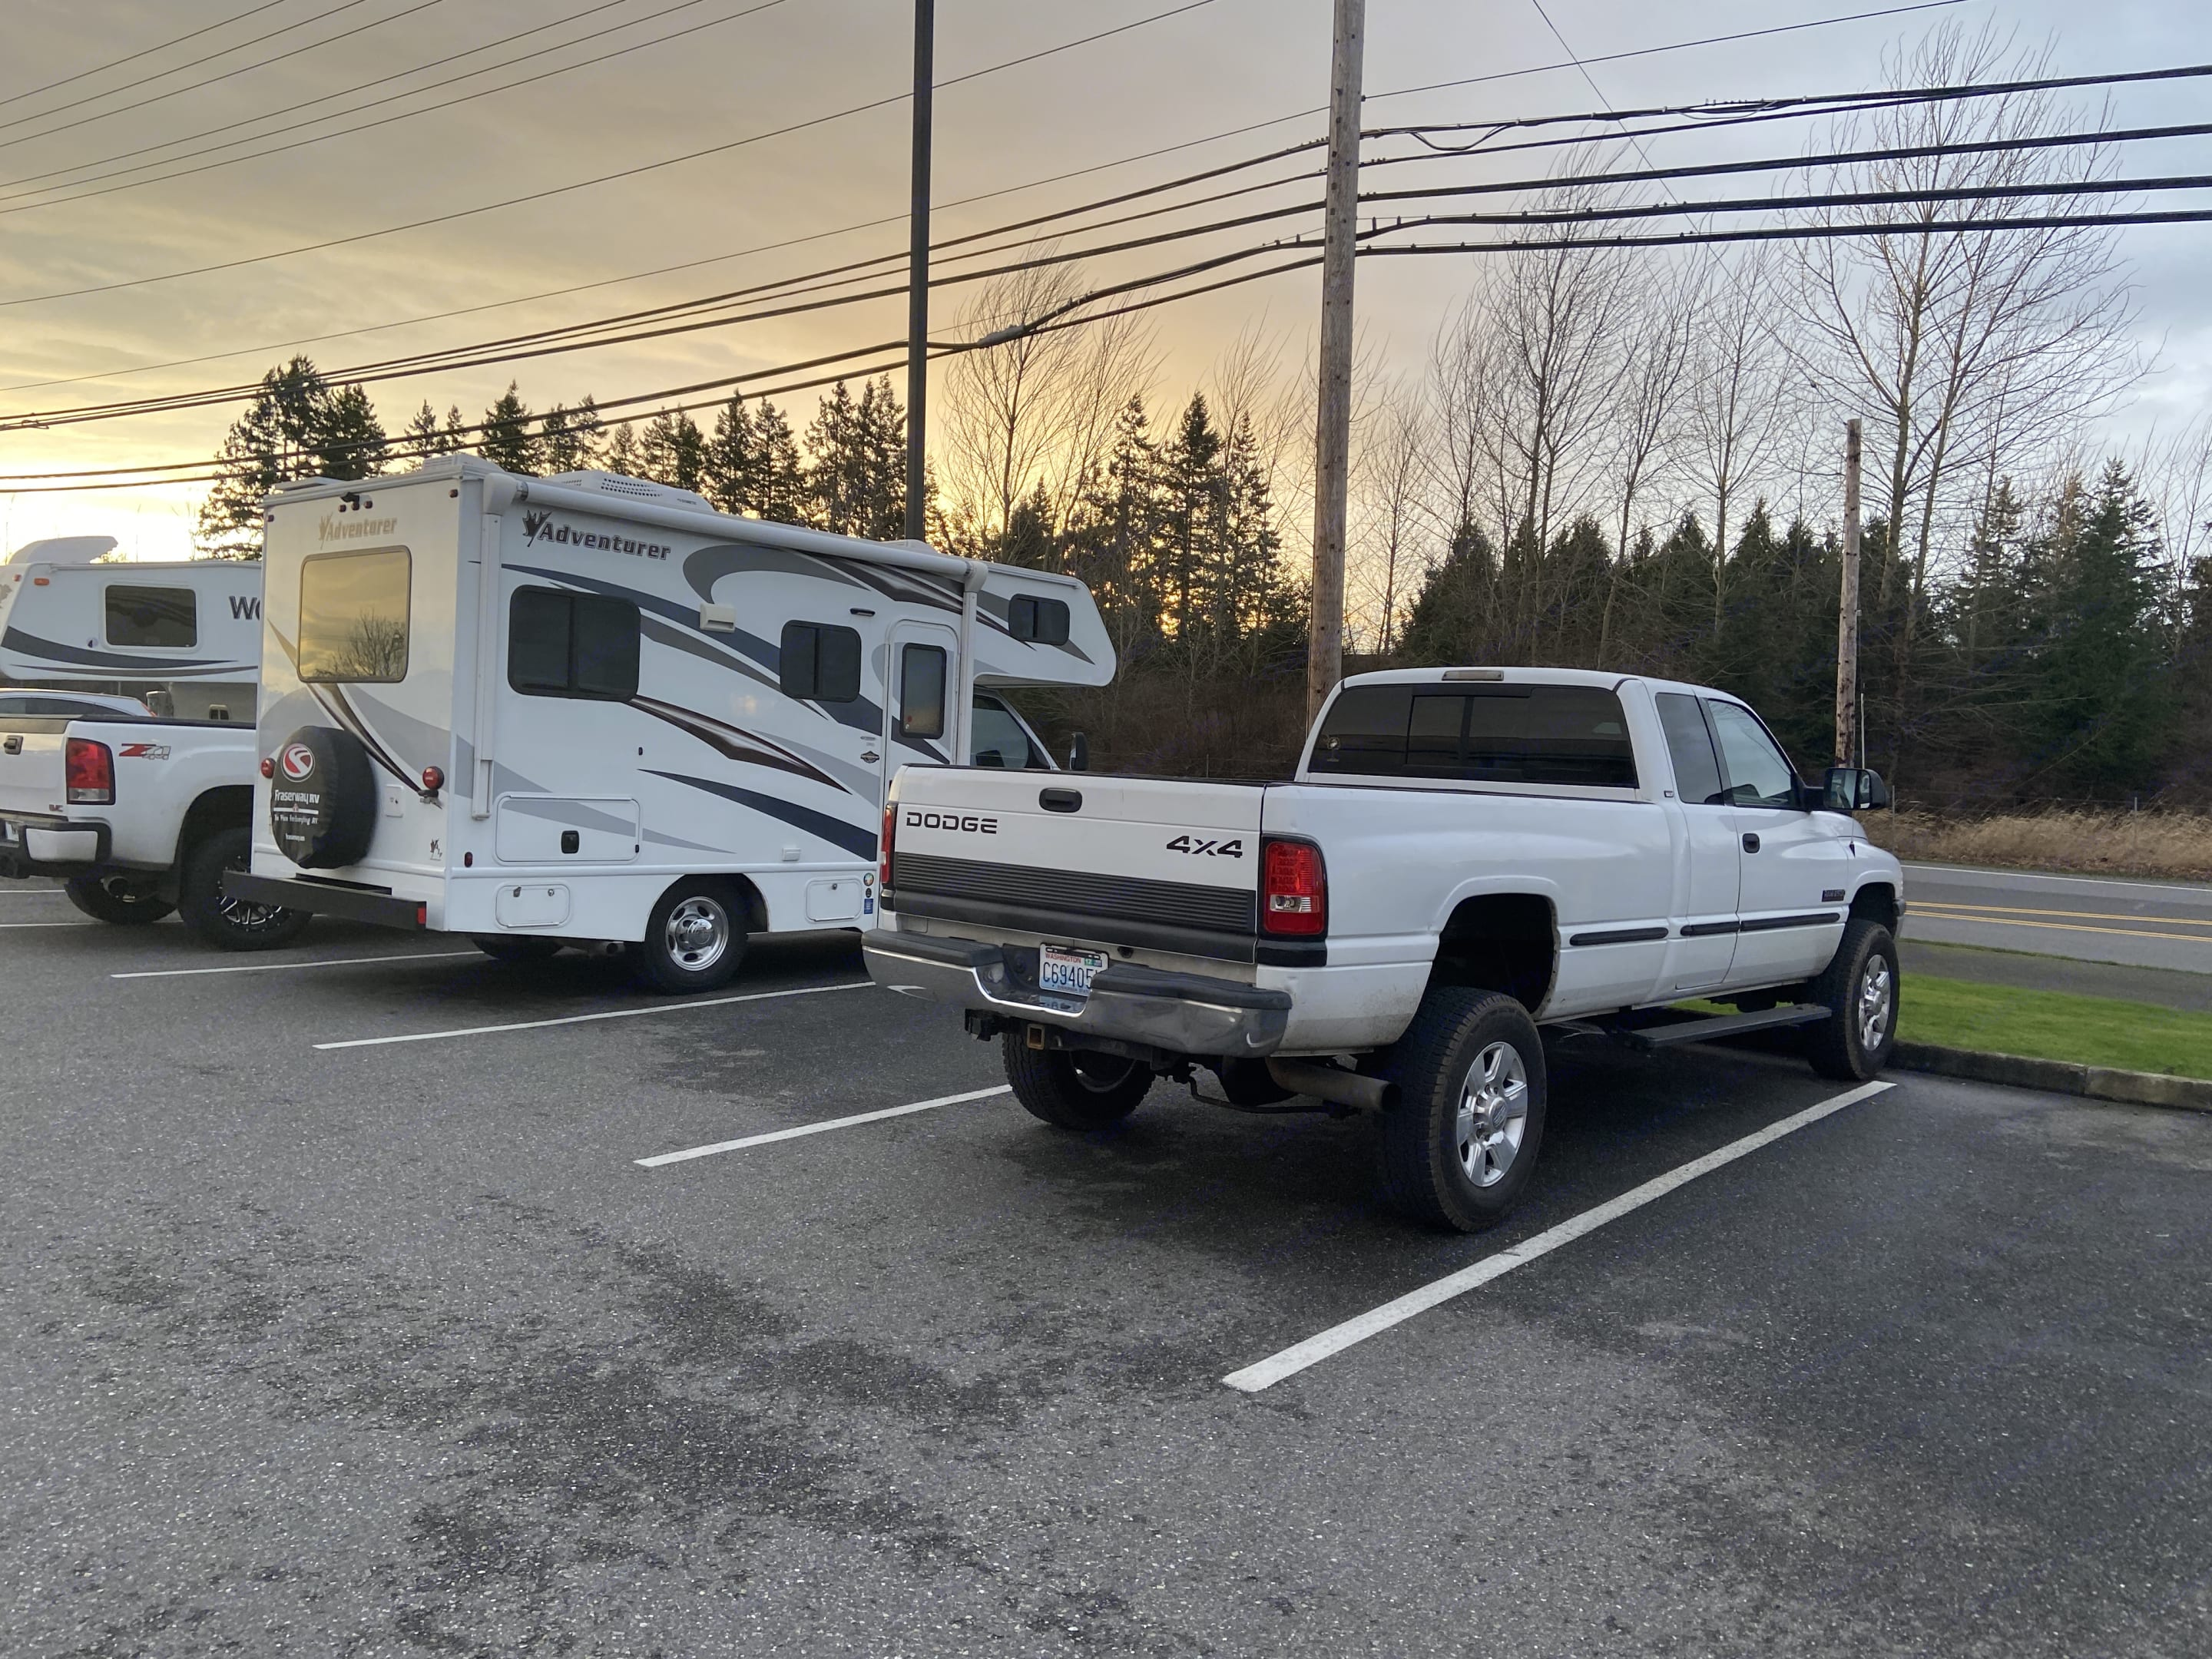 Nimble to drive!  This rig is a short as a sprinter van. Our upgraded suspension makes driving SMOOTH! We are shorter than this typical Dodge truck!. ALP Adventurer 19RD 2019